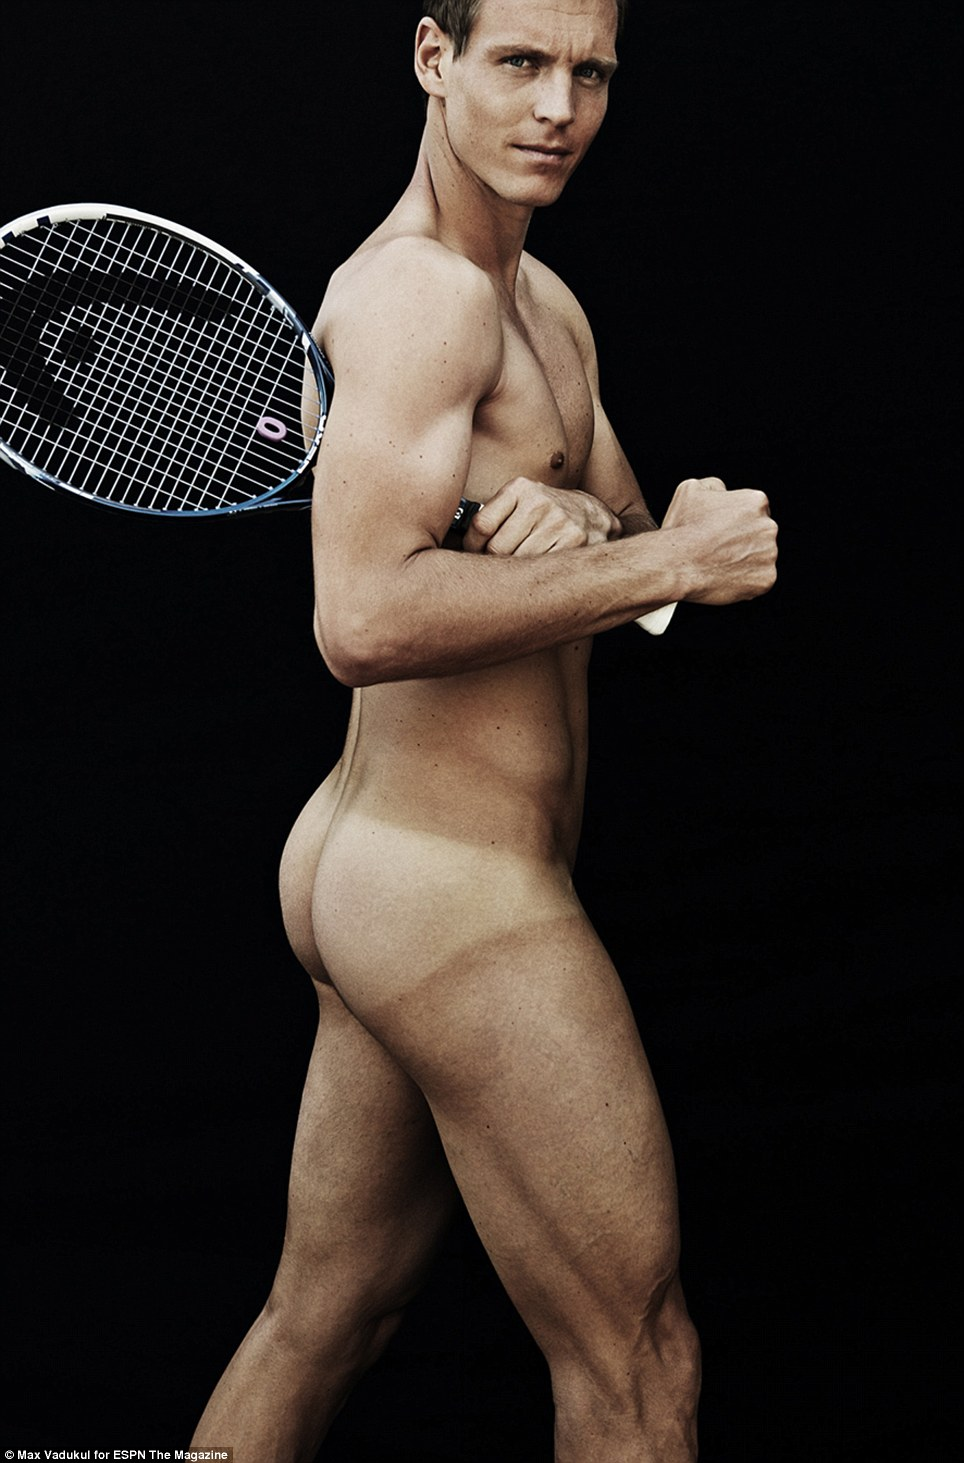 Tennis anyone? Czechoslovakian tennis star Tomas Berdych (pictured) gamely ditches his shorts - to great effect - as he poses for the risque issue